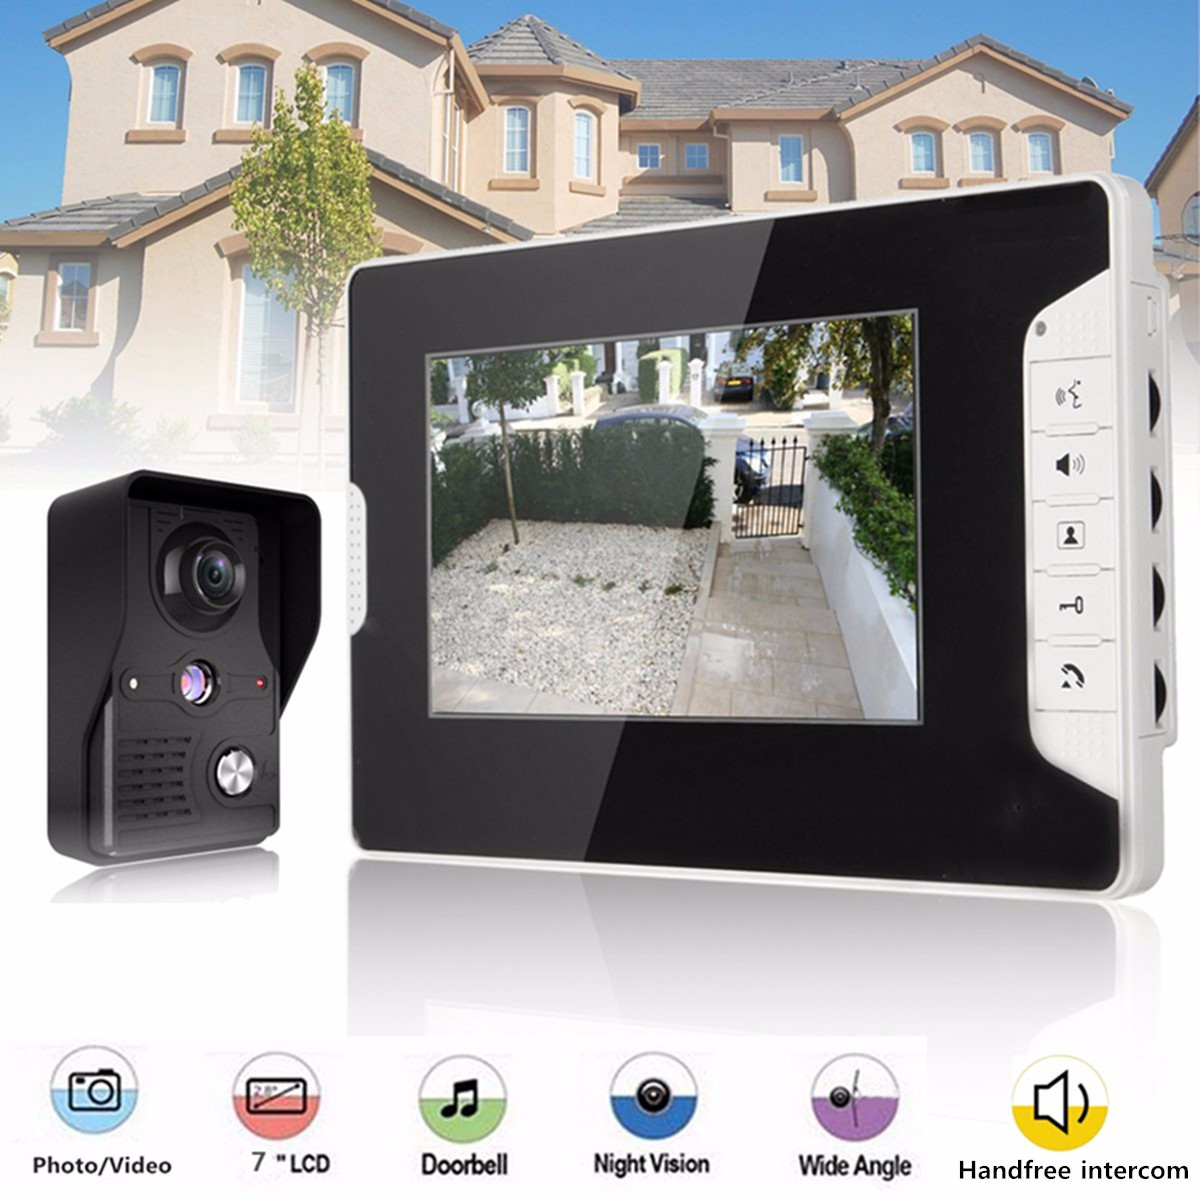 7 Inch LCD Video Doorbell Intercom IR Camera Monitor Night Vision Home Video Door Viewer Video-ey Security